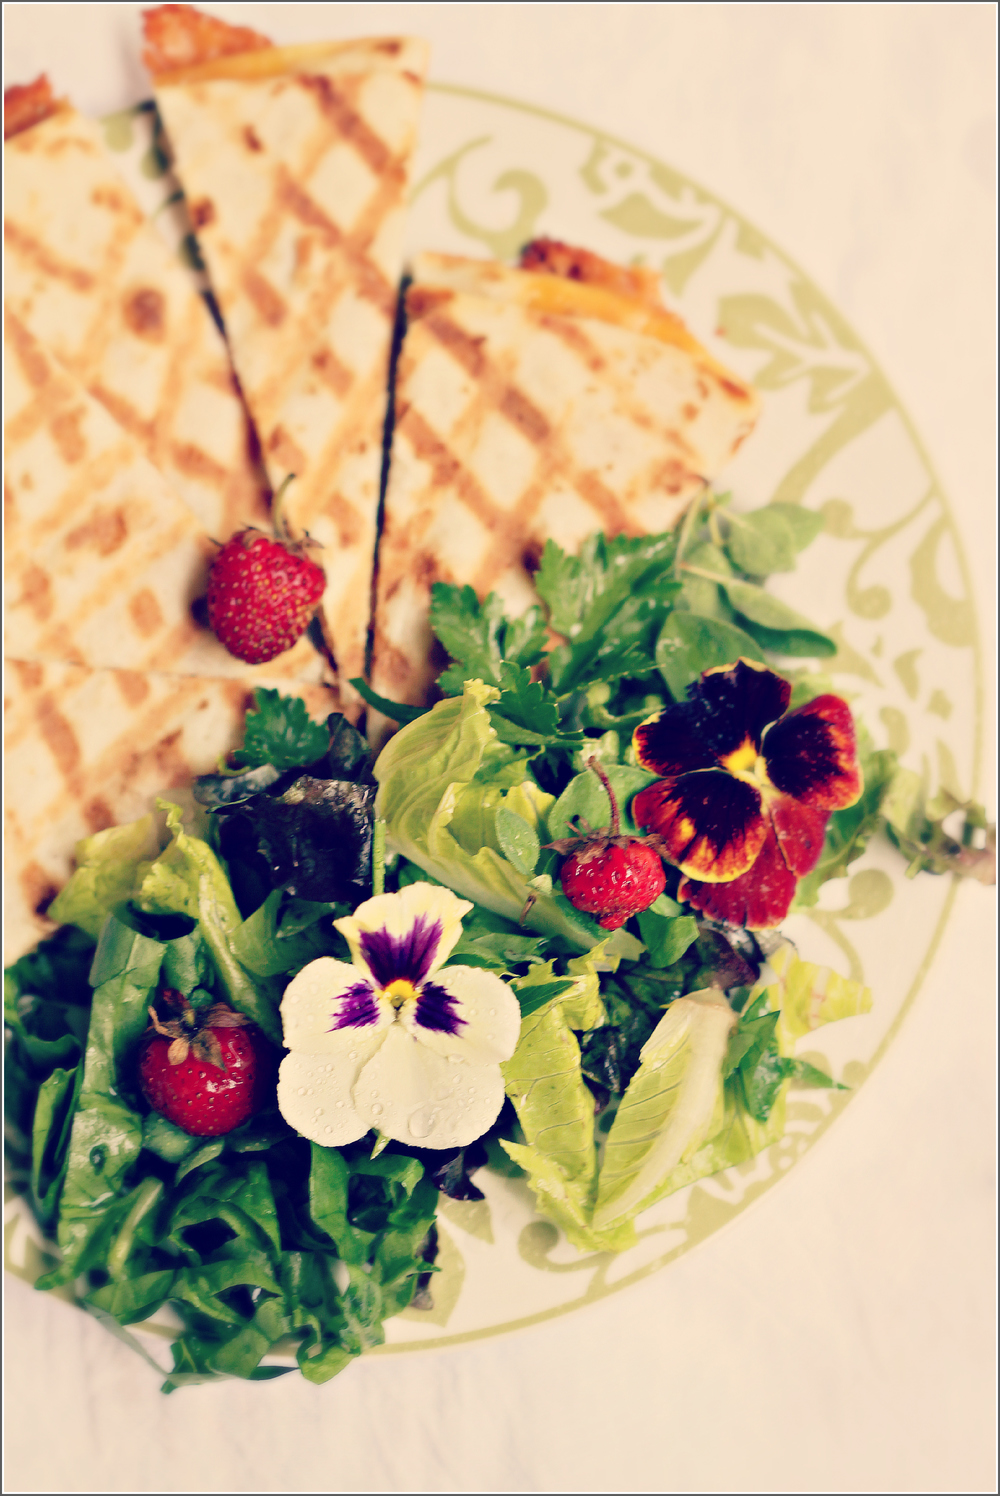 Quesadillas with Salad & Berries